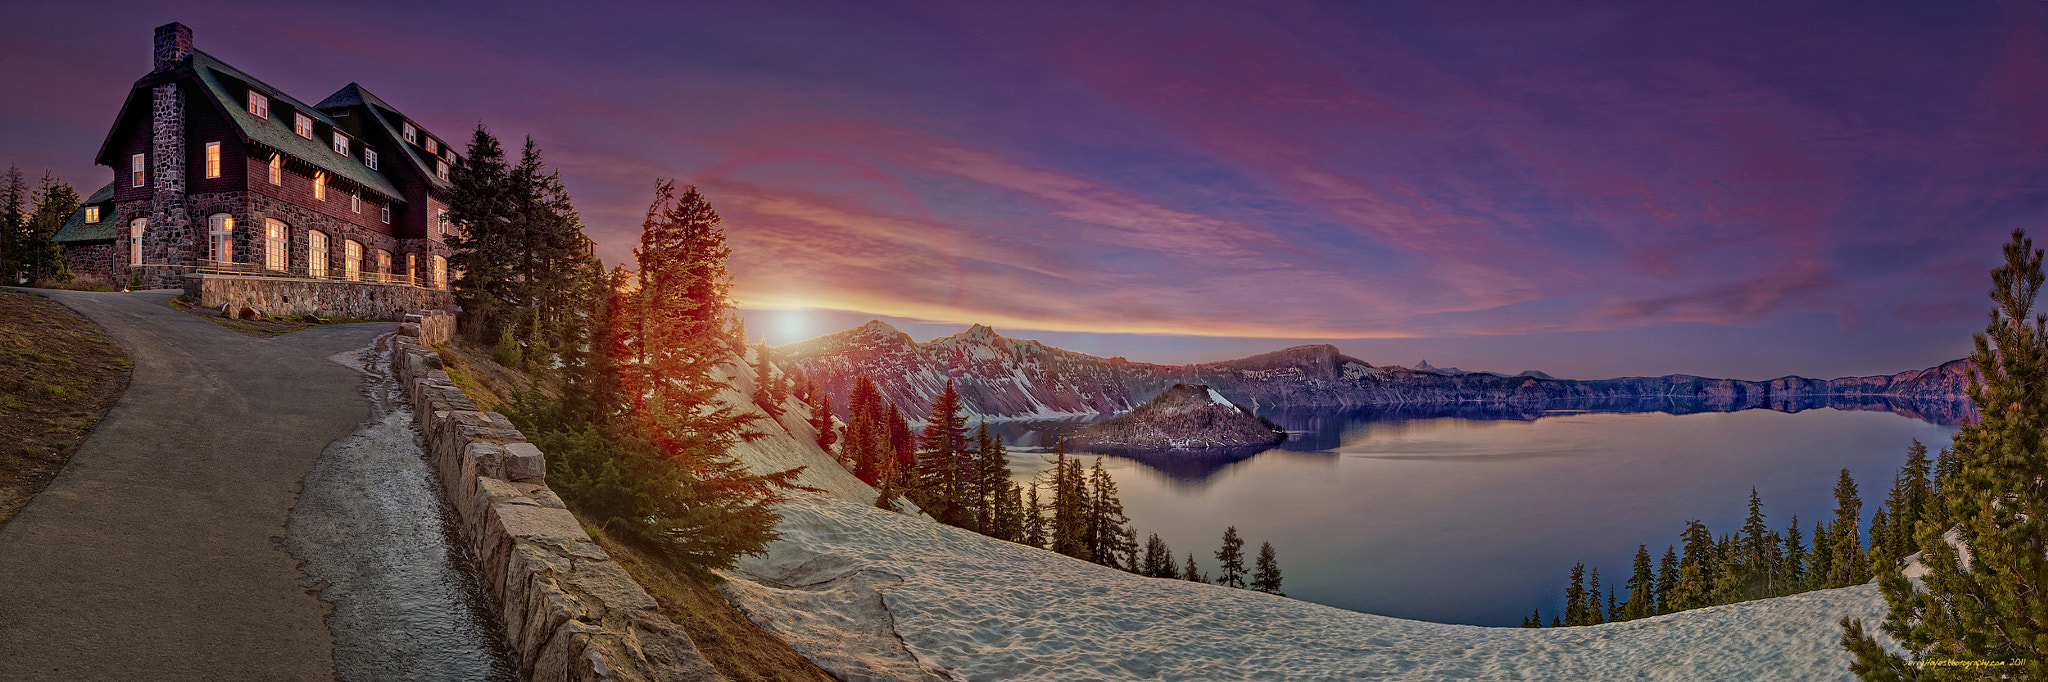 Photograph Crater Lake Sunset by Jerry Hayes on 500px